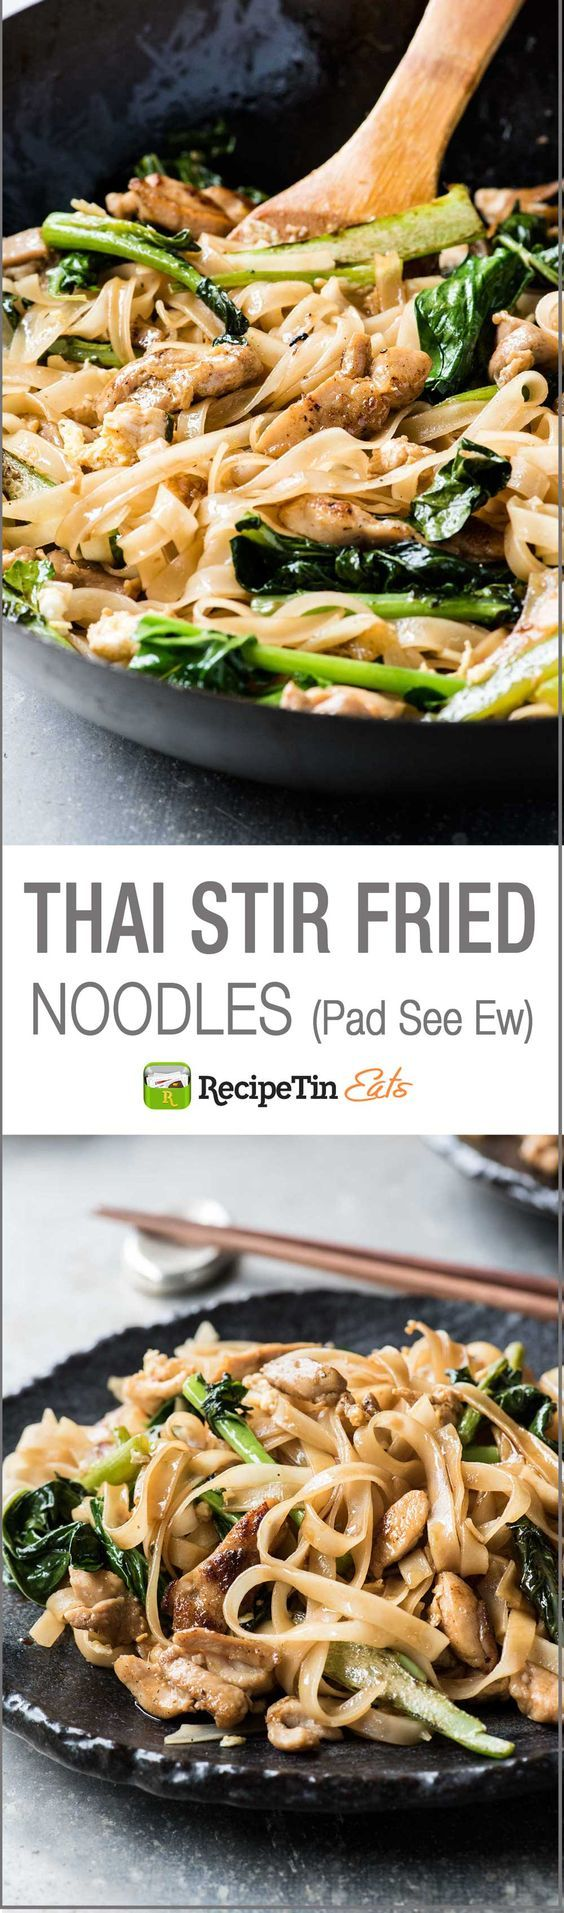 Thai stir fried noodles (Pad See Ew) a very popular Thai Street food with…